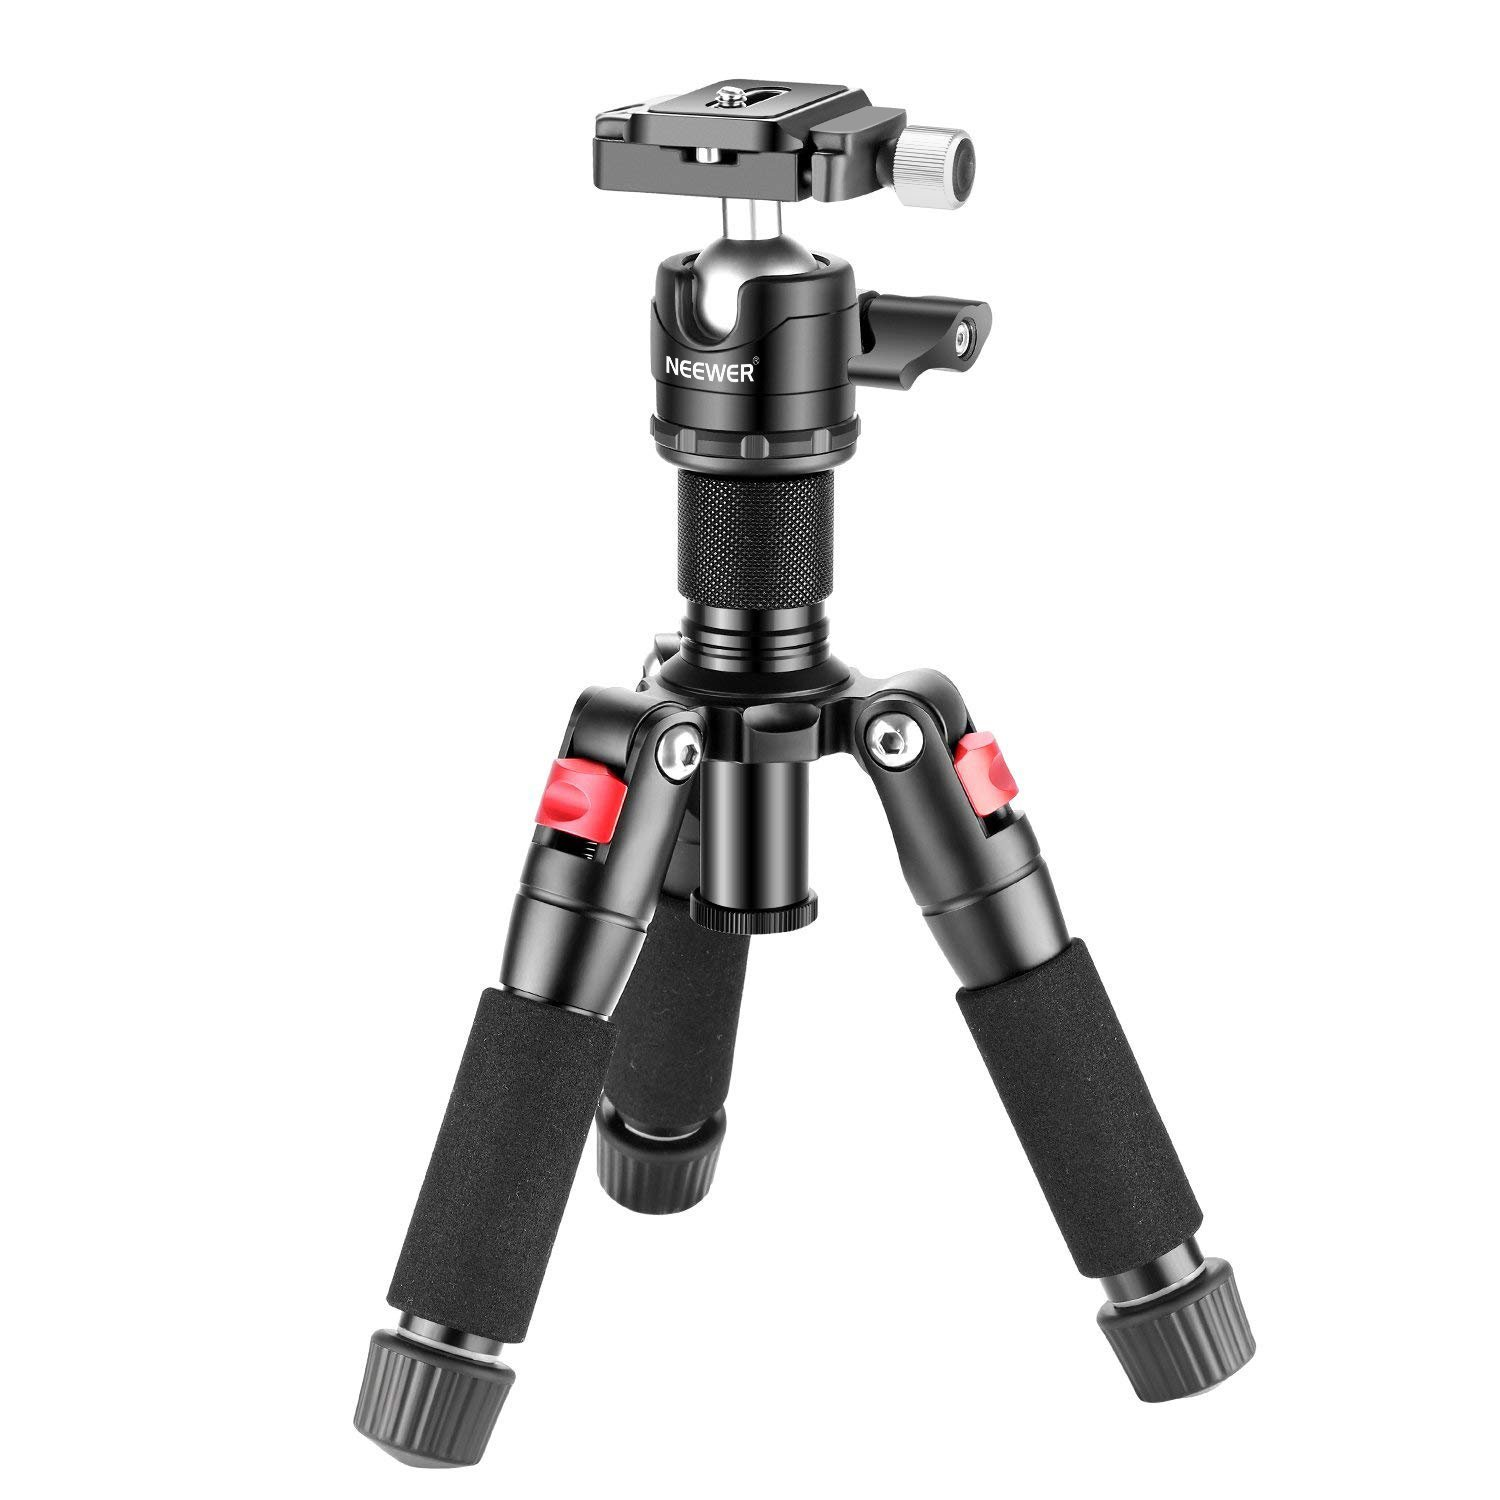 Neewer Portable Desktop Mini Tripod - Aluminum Alloy 20...